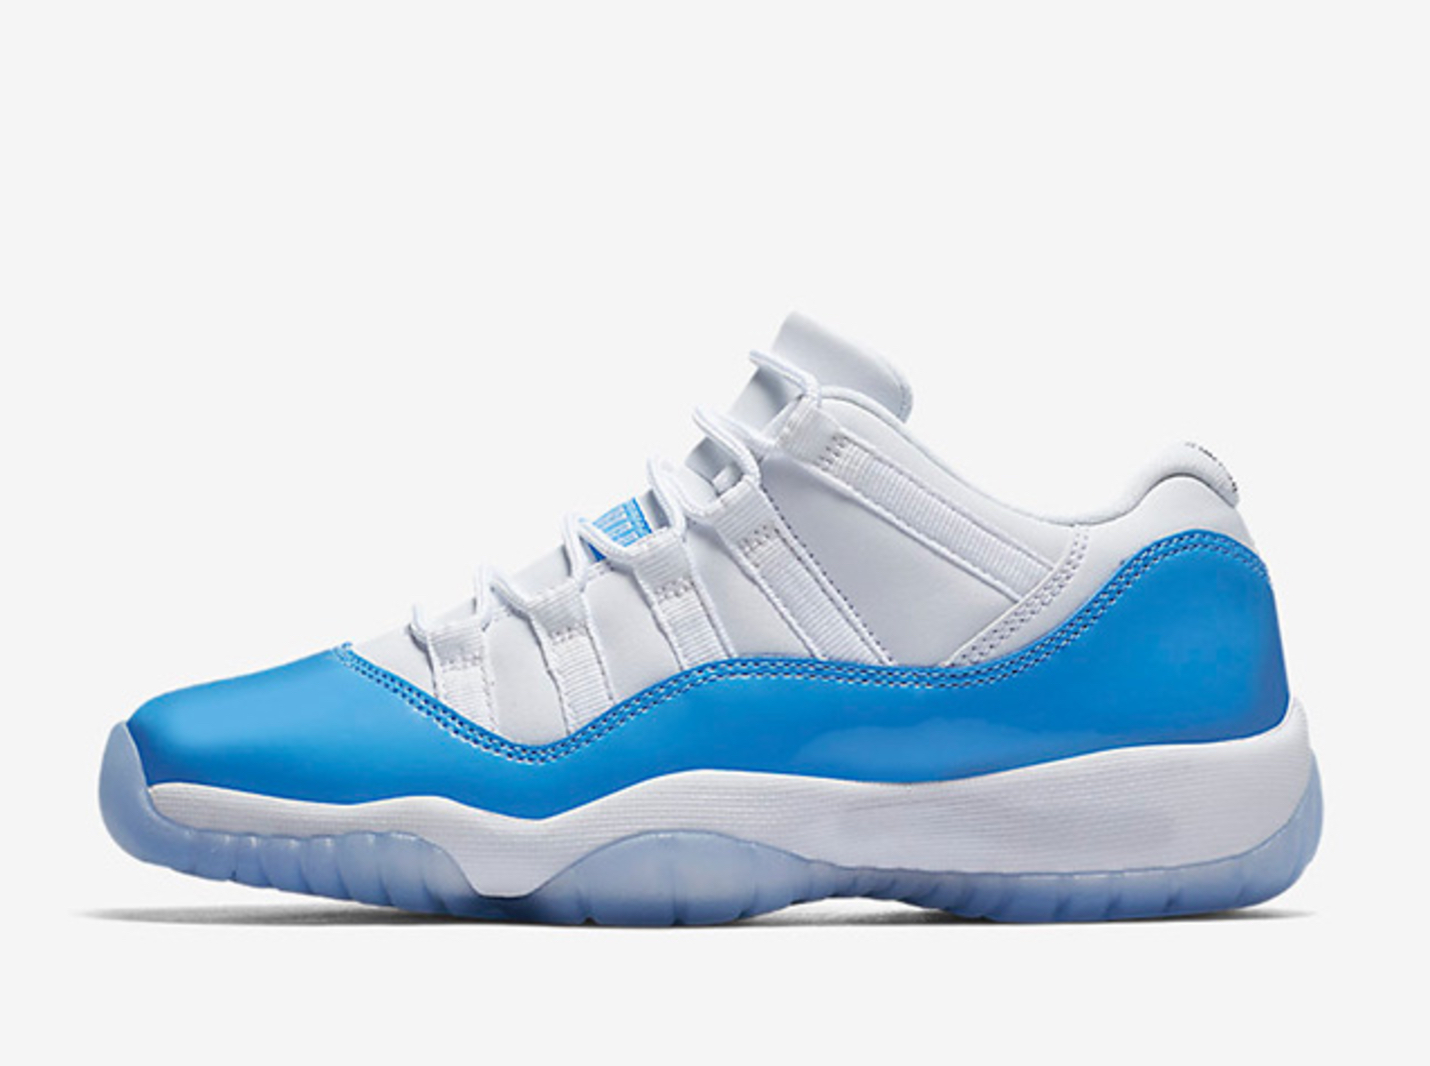 air jordan 11 retro low university blue summer 2017 1